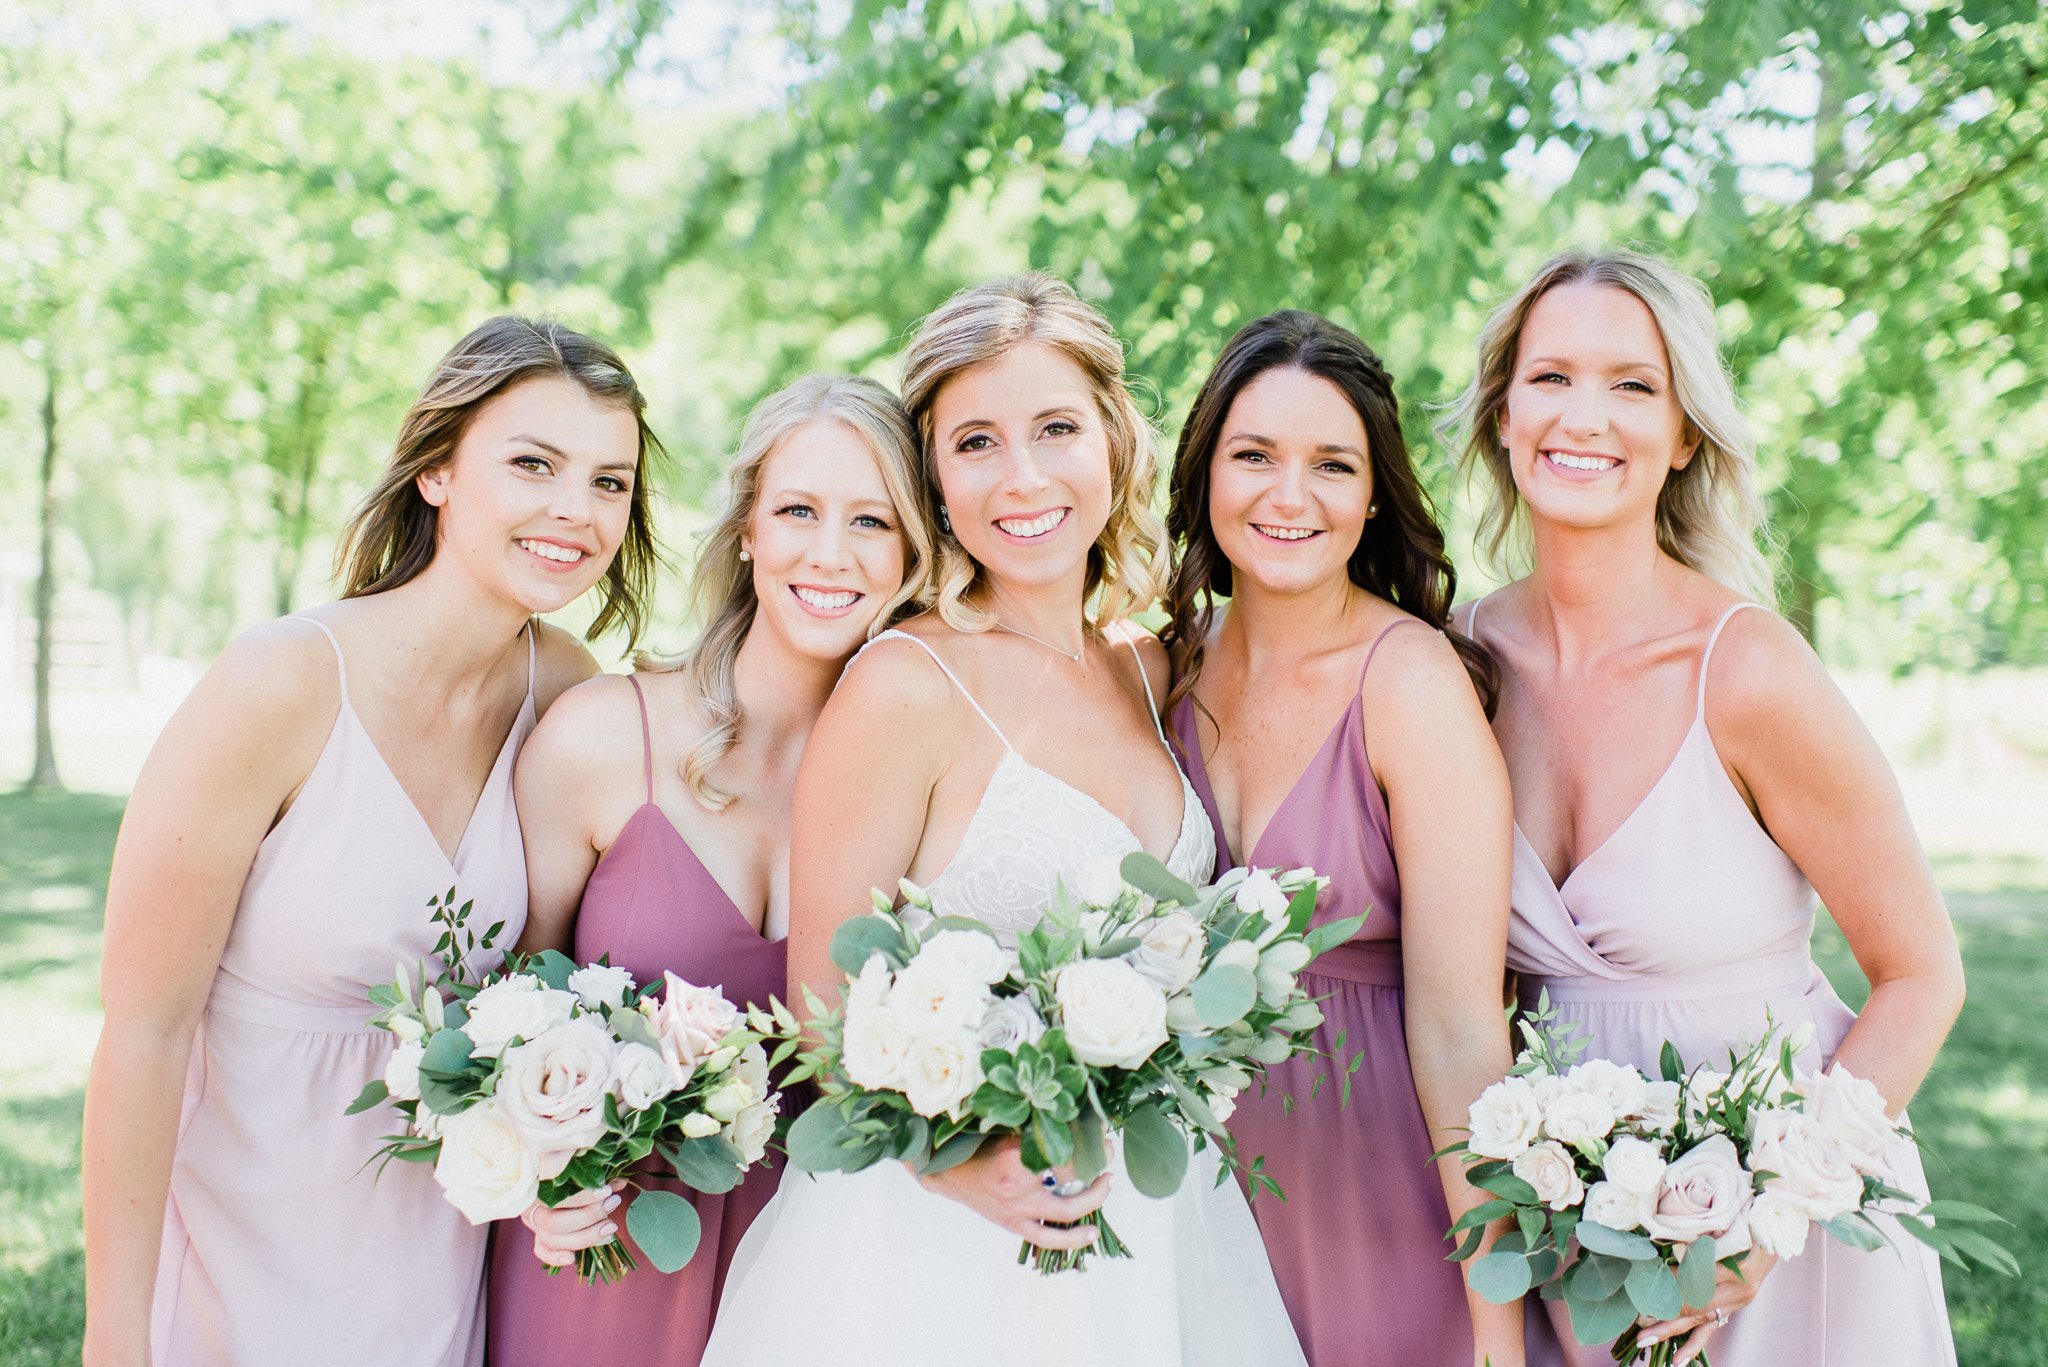 Park and Fifth Co bridesmaid dresses by Jenn Kavanagh Photography